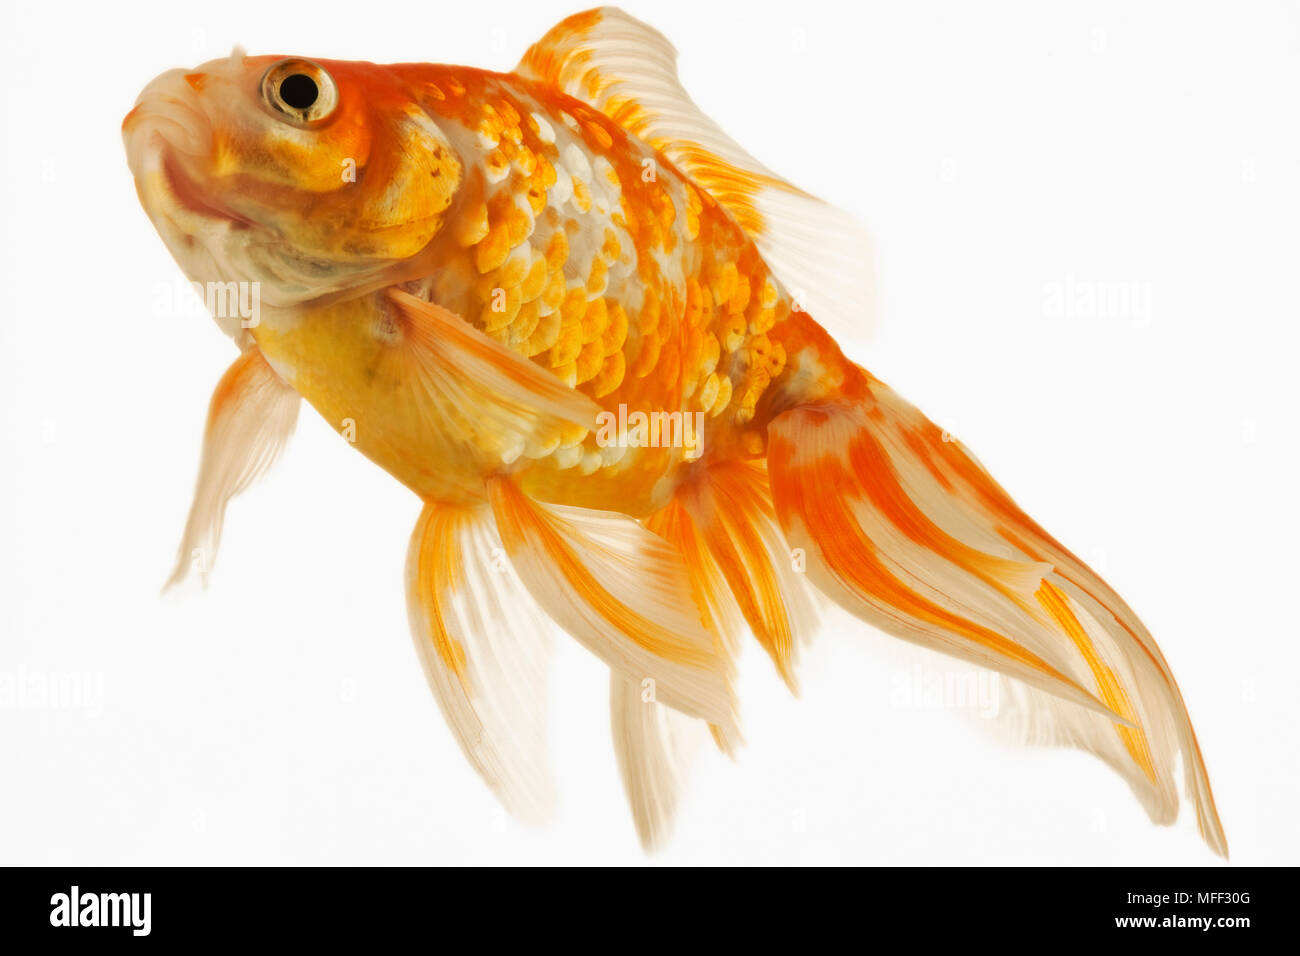 Goldfish (Carassius auratus). Fresh water fish. Variety of fancy goldfish. Close-up of face. Studio shot against white background. Asian origin. Distr Stock Photo